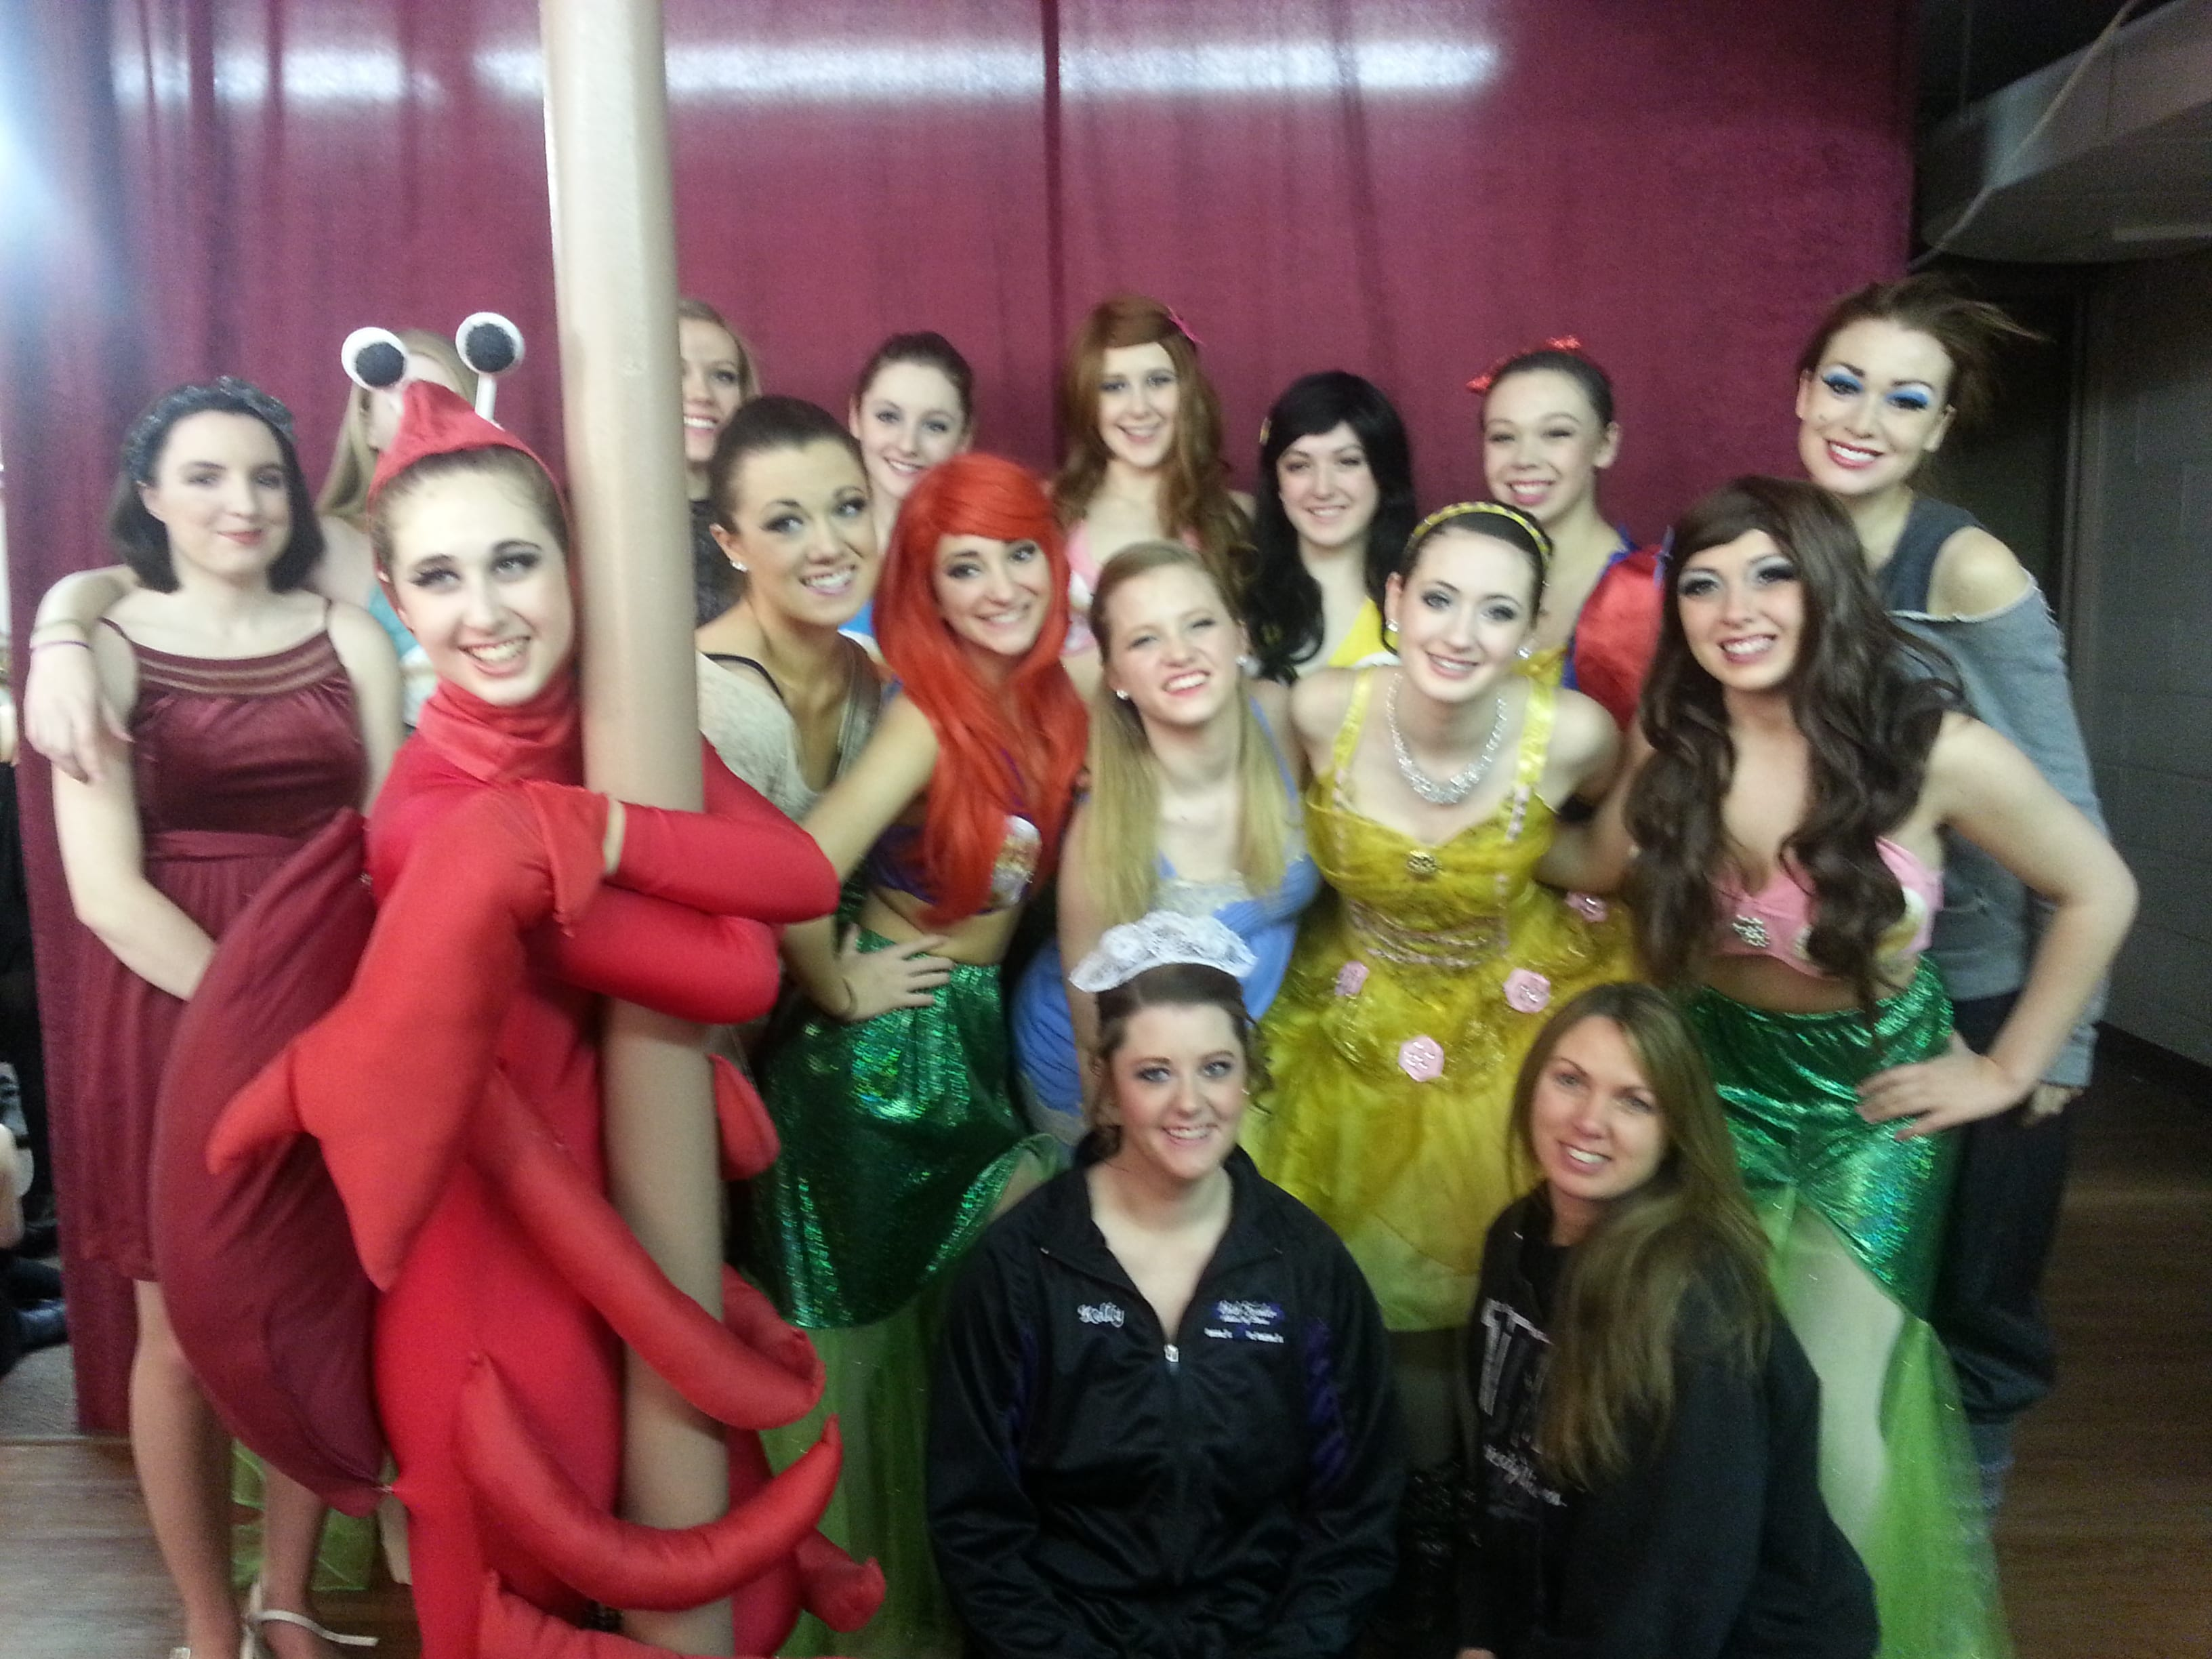 Photos – Beth Fowler School of Dance : Genoa and St. Charles Illinois